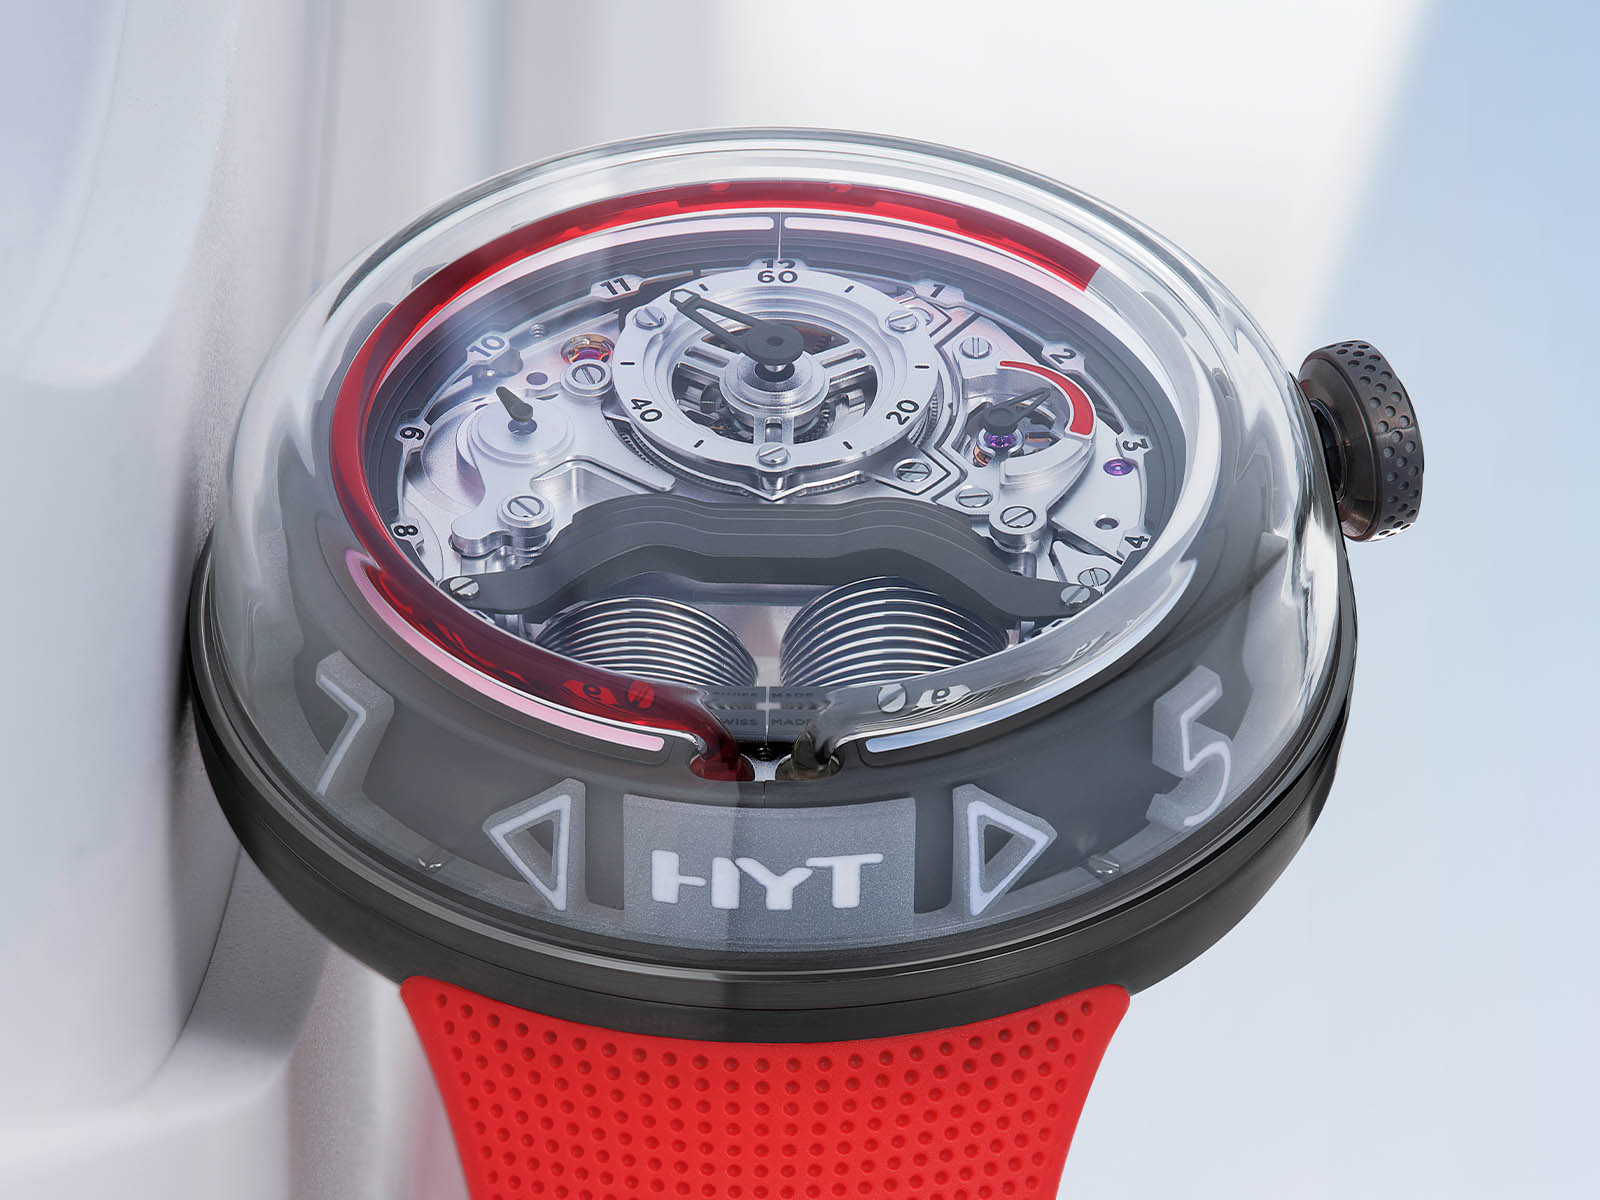 h02248-hyt-h5-red-limited-edition-5.jpg